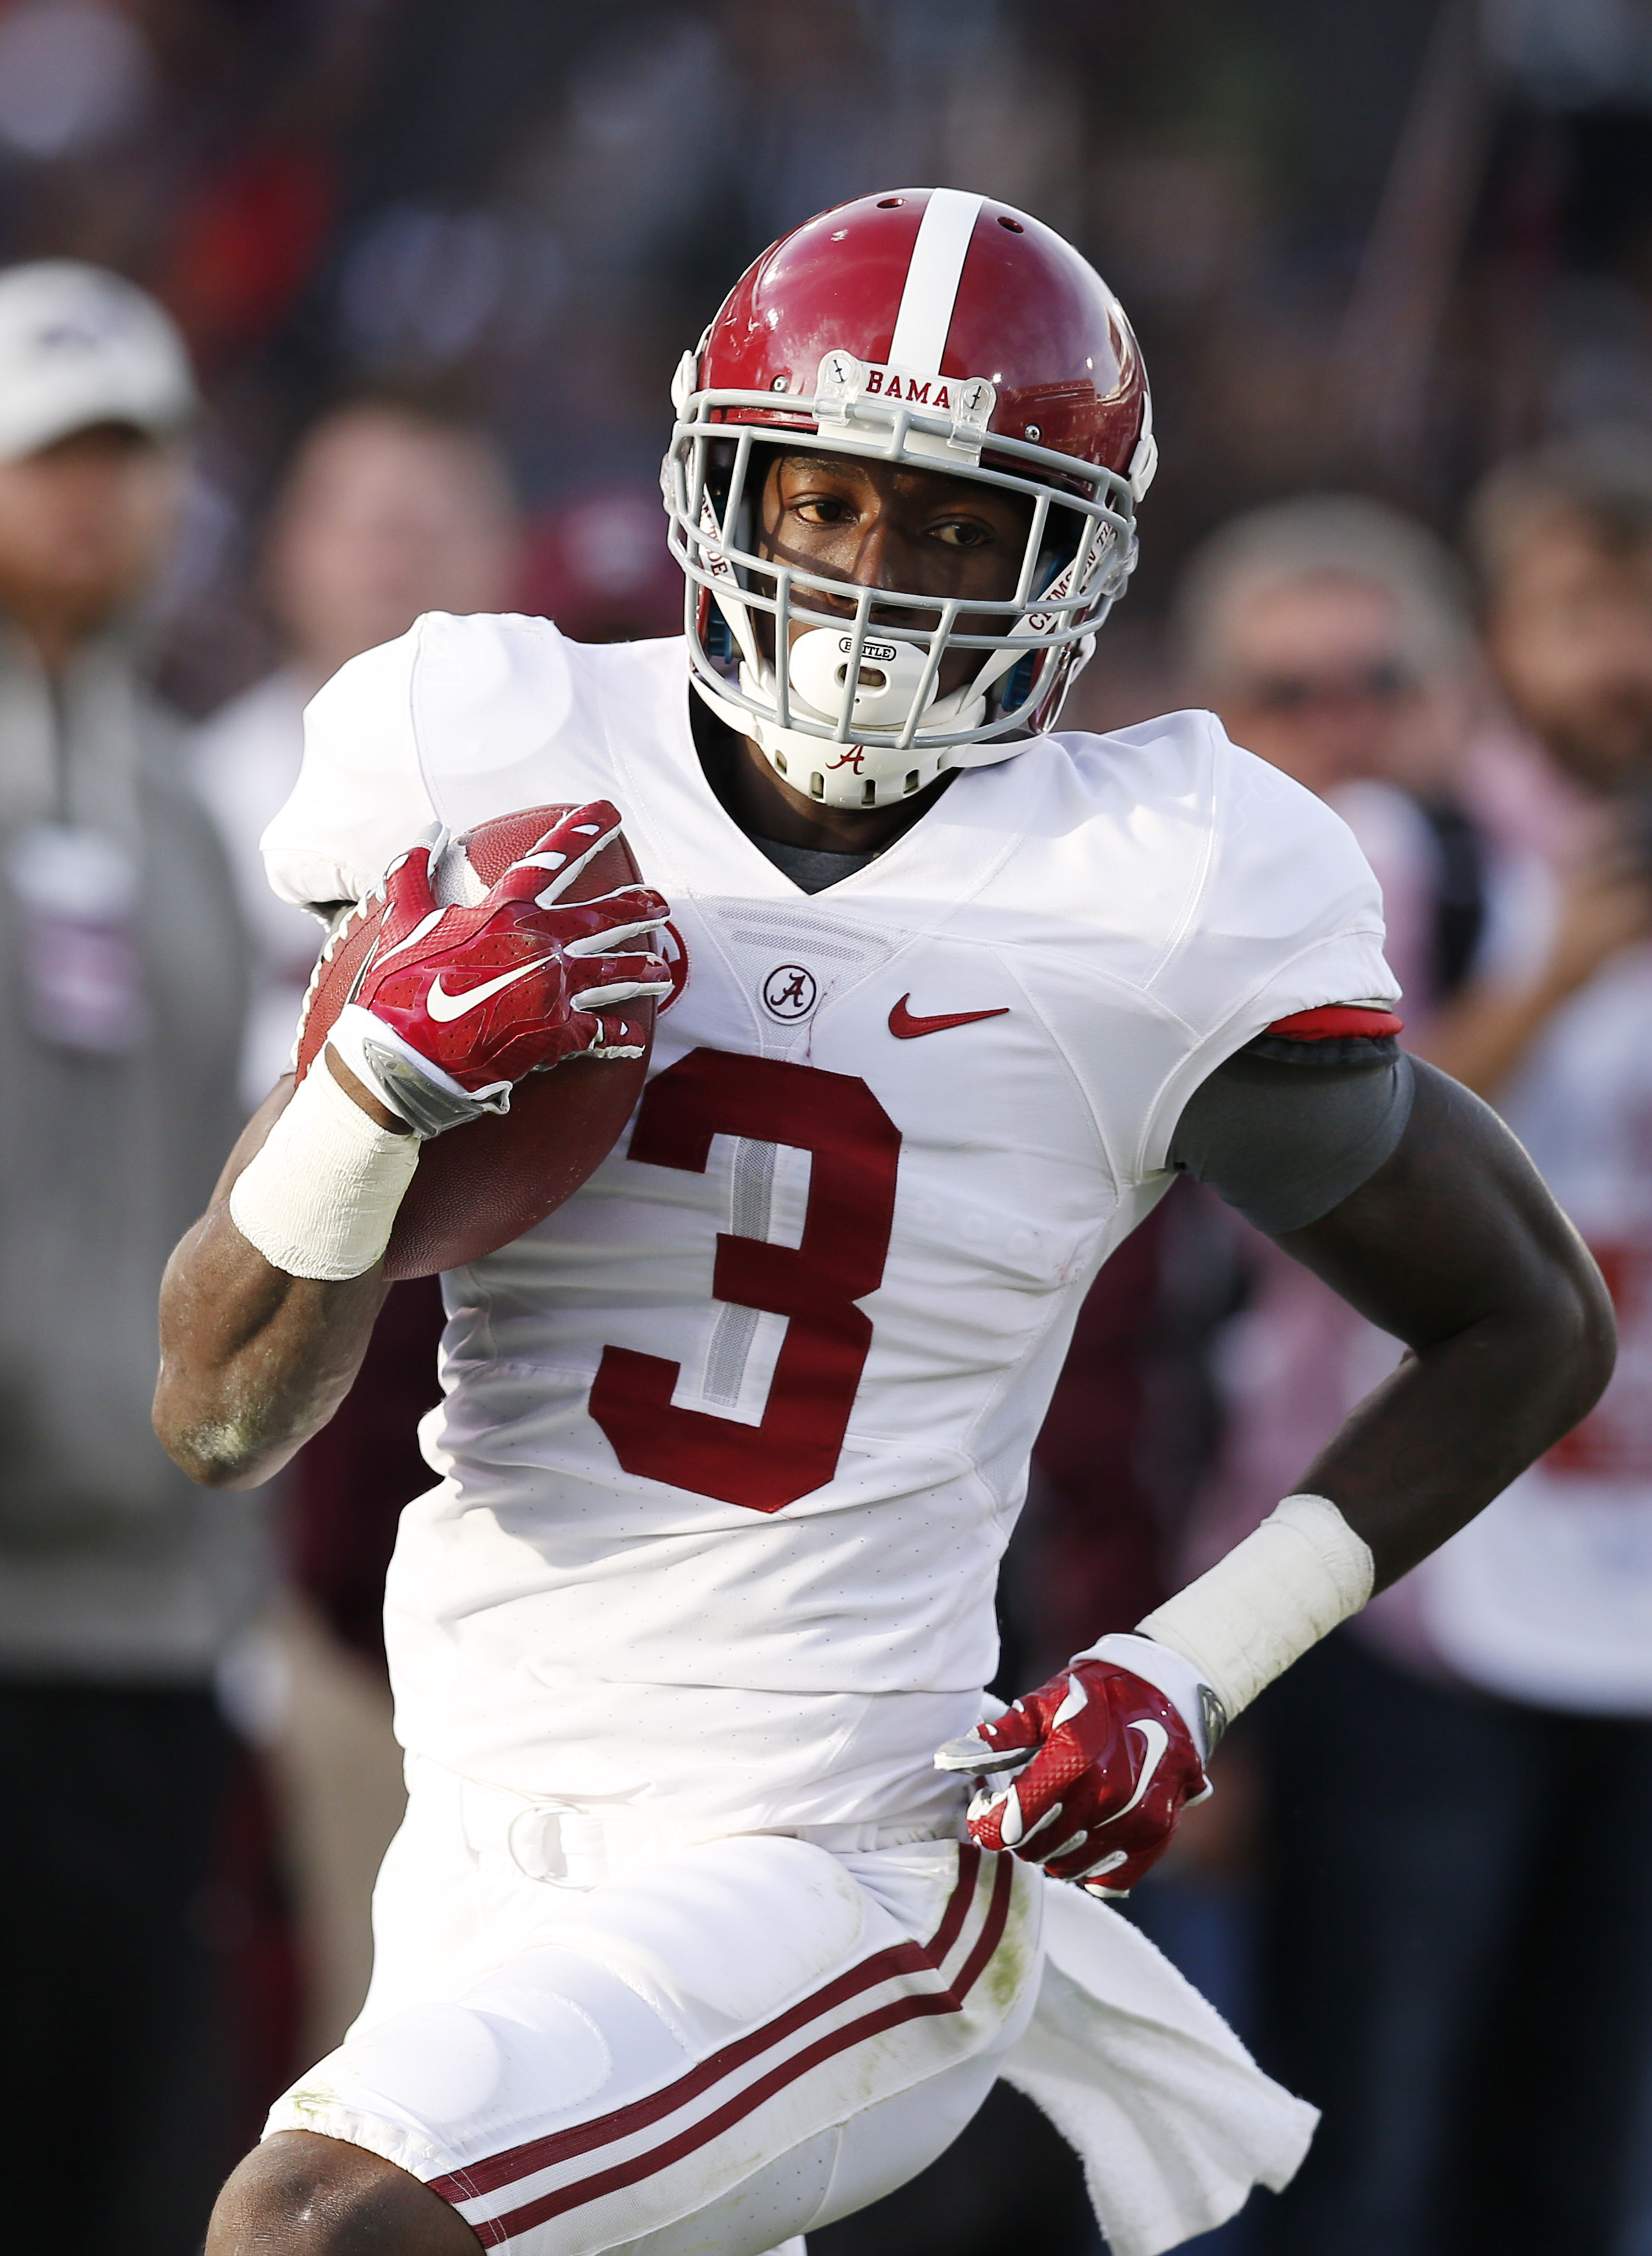 Alabama wide receiver Calvin Ridley (3) scores a touchdown on a 60-yard-pass reception during the first half of an NCAA college football game against Mississippi State in Starkville, Miss., Saturday, Nov. 14, 2015. (AP Photo/Rogelio V. Solis)